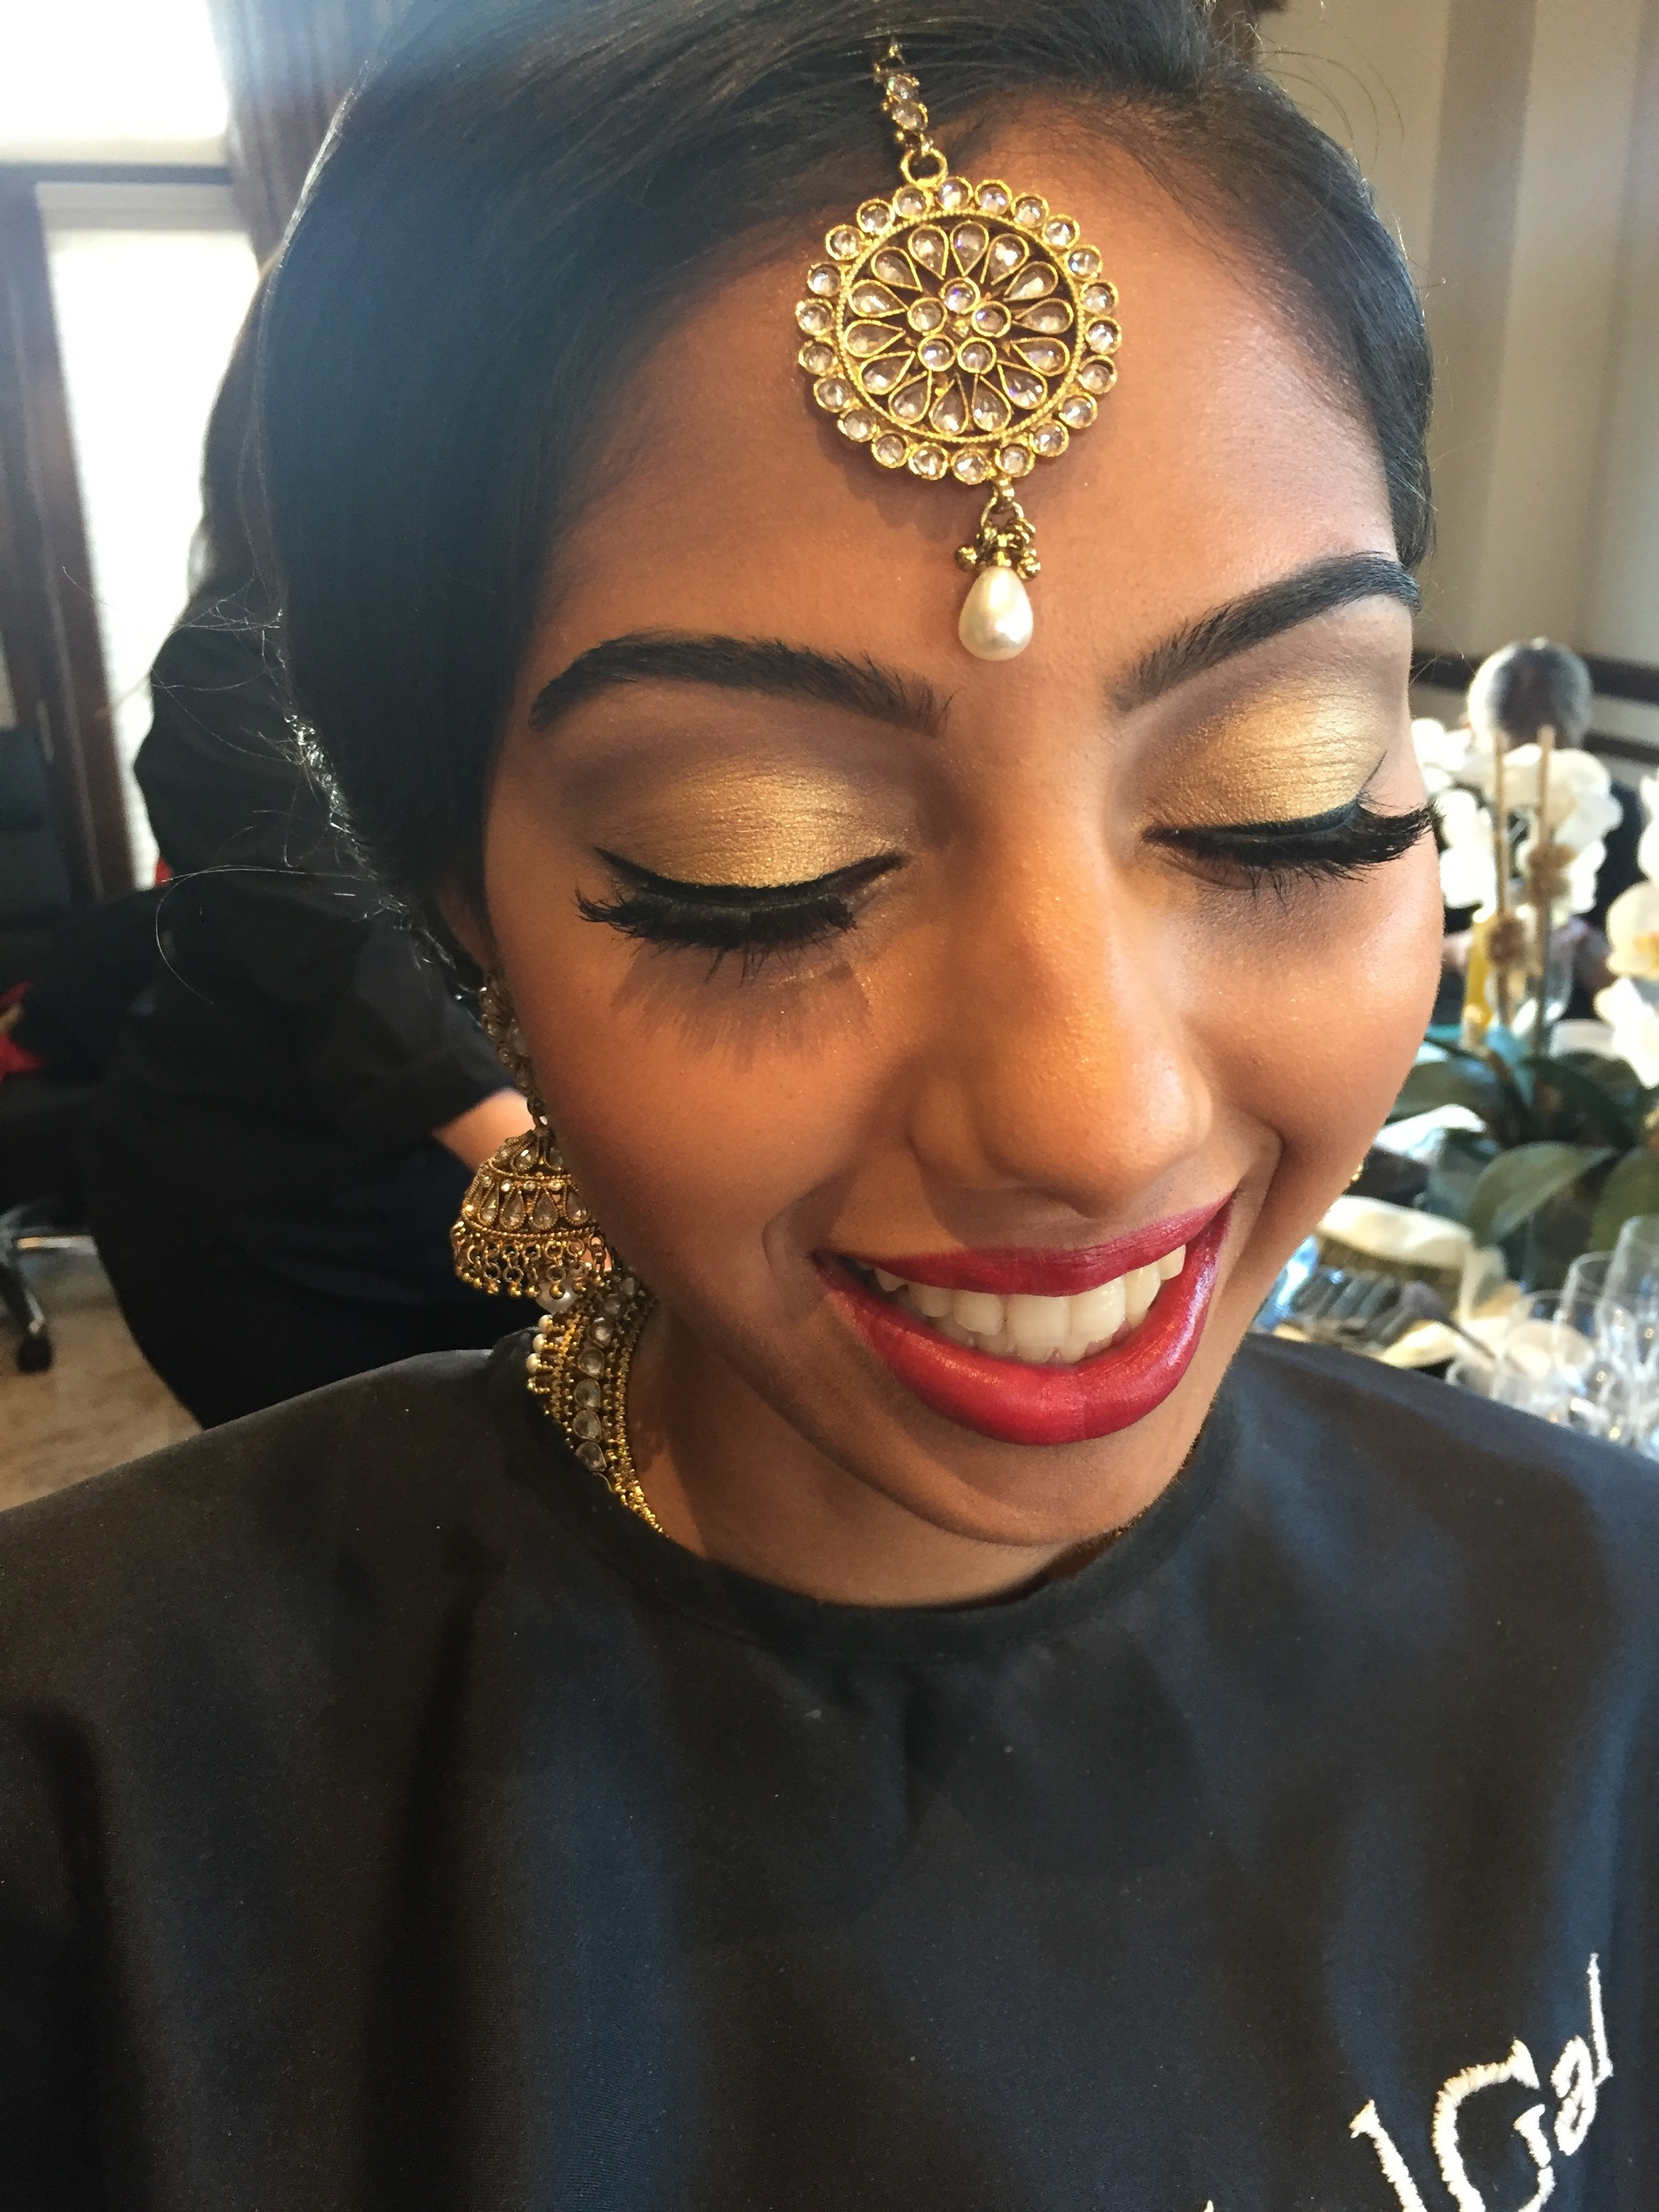 Makeup Artists & Hair Stylists in New York City